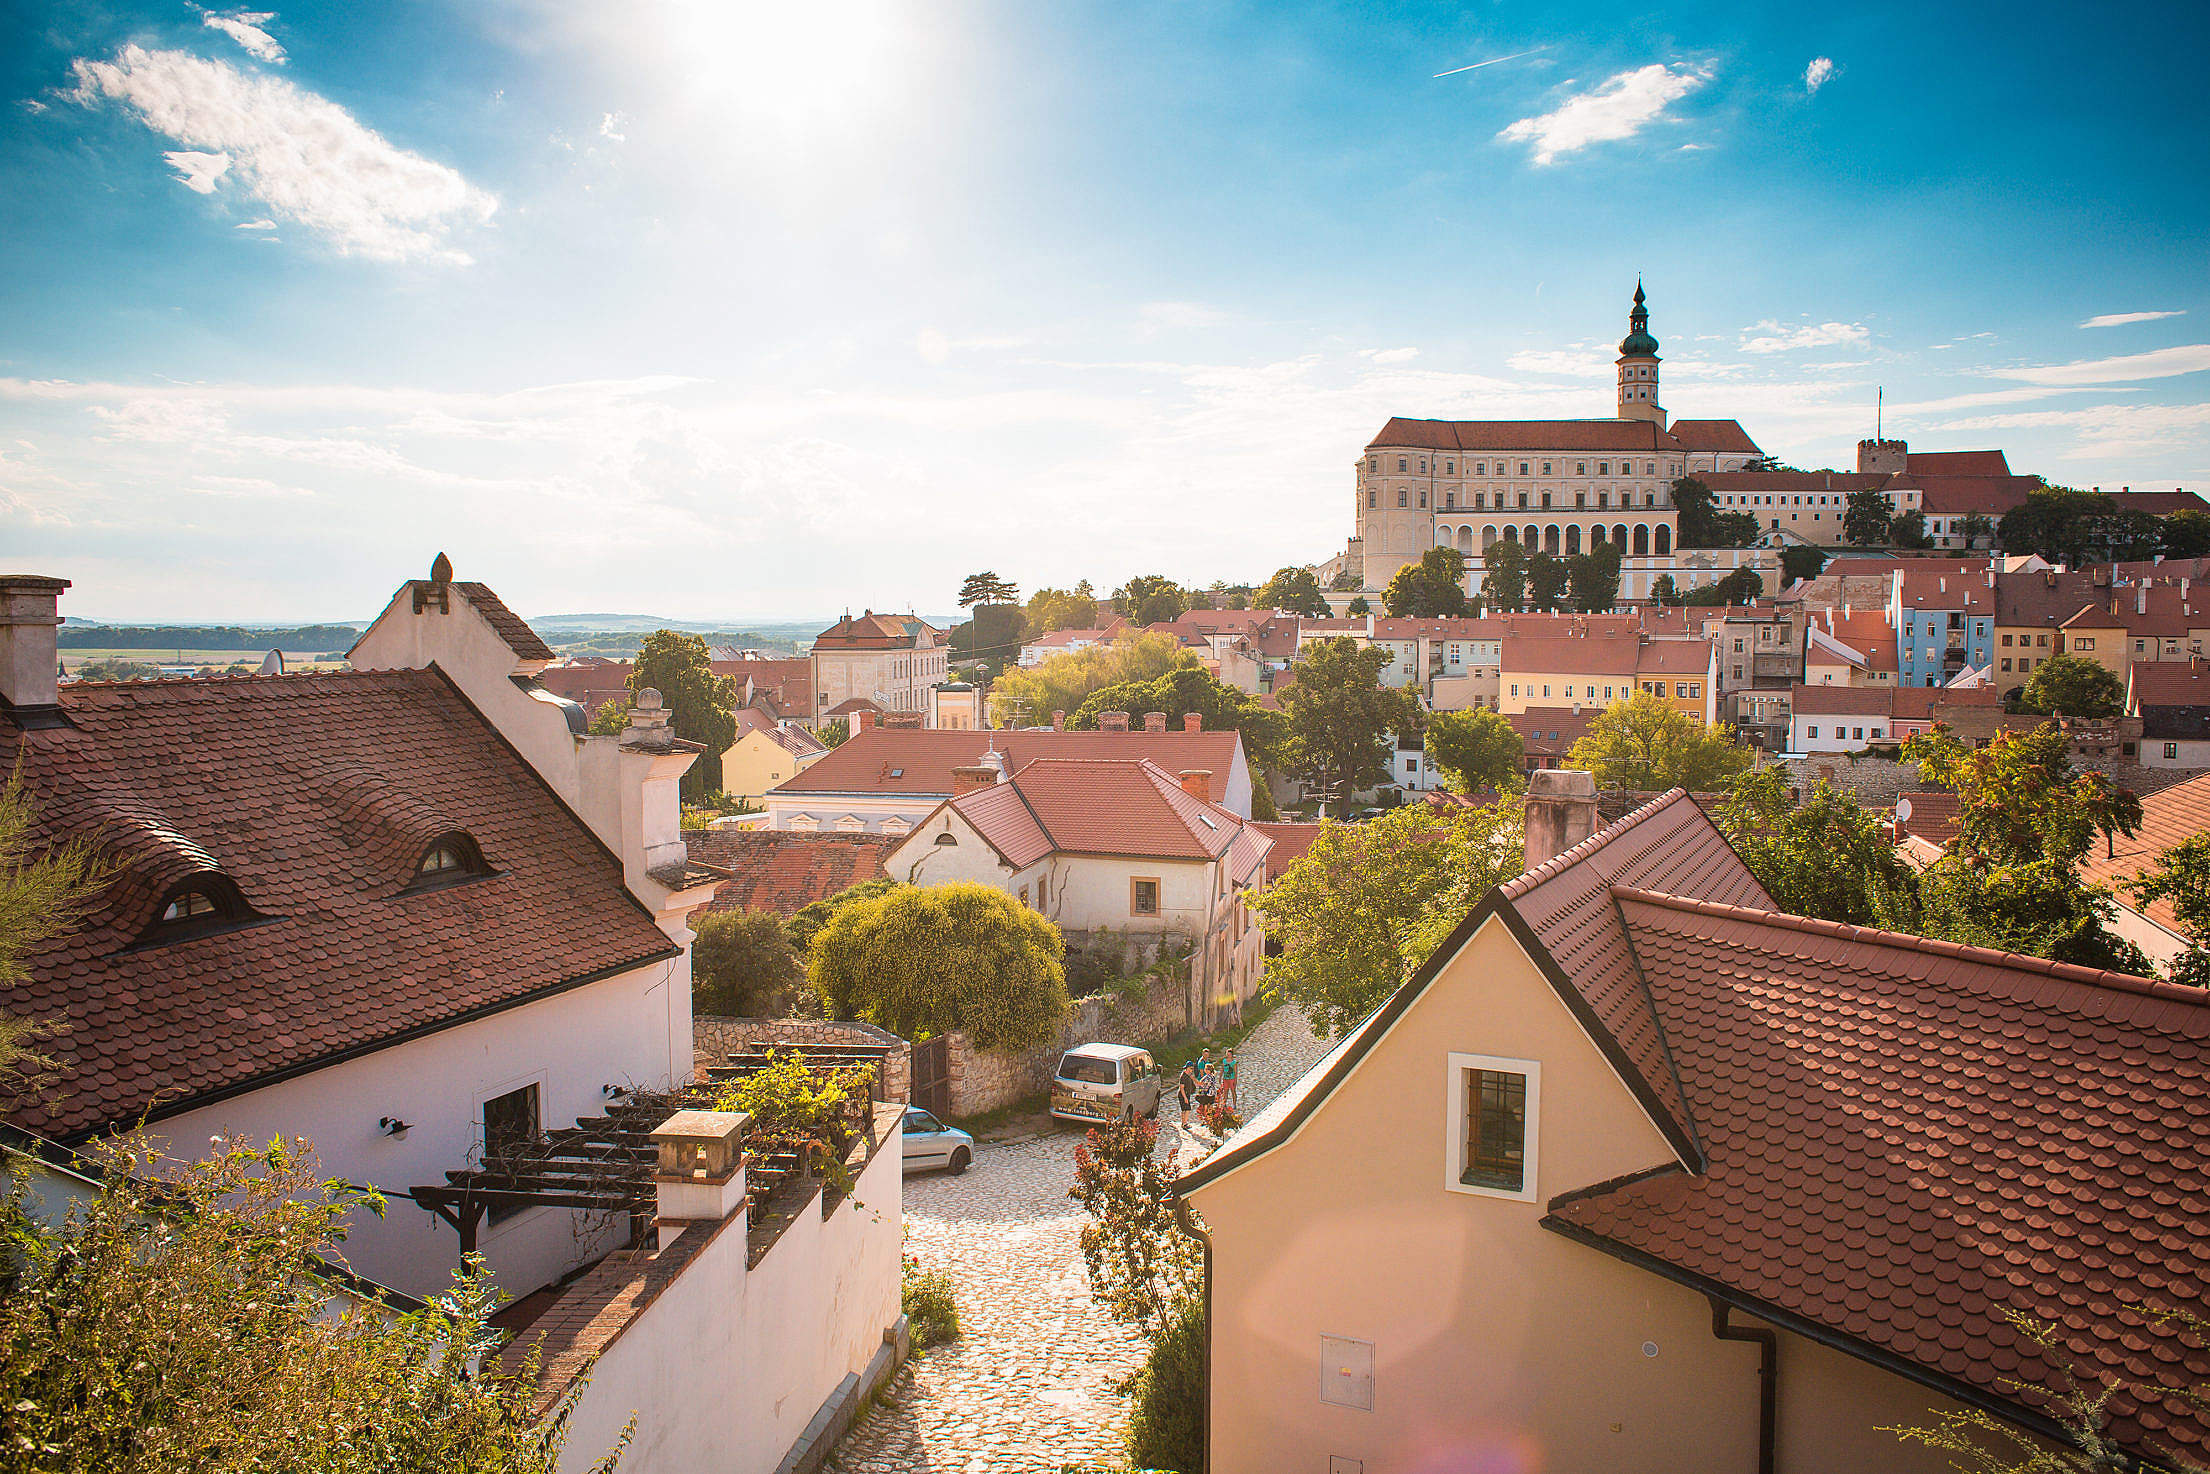 Wonderful City of Mikulov, Czech Republic Free Stock Photo